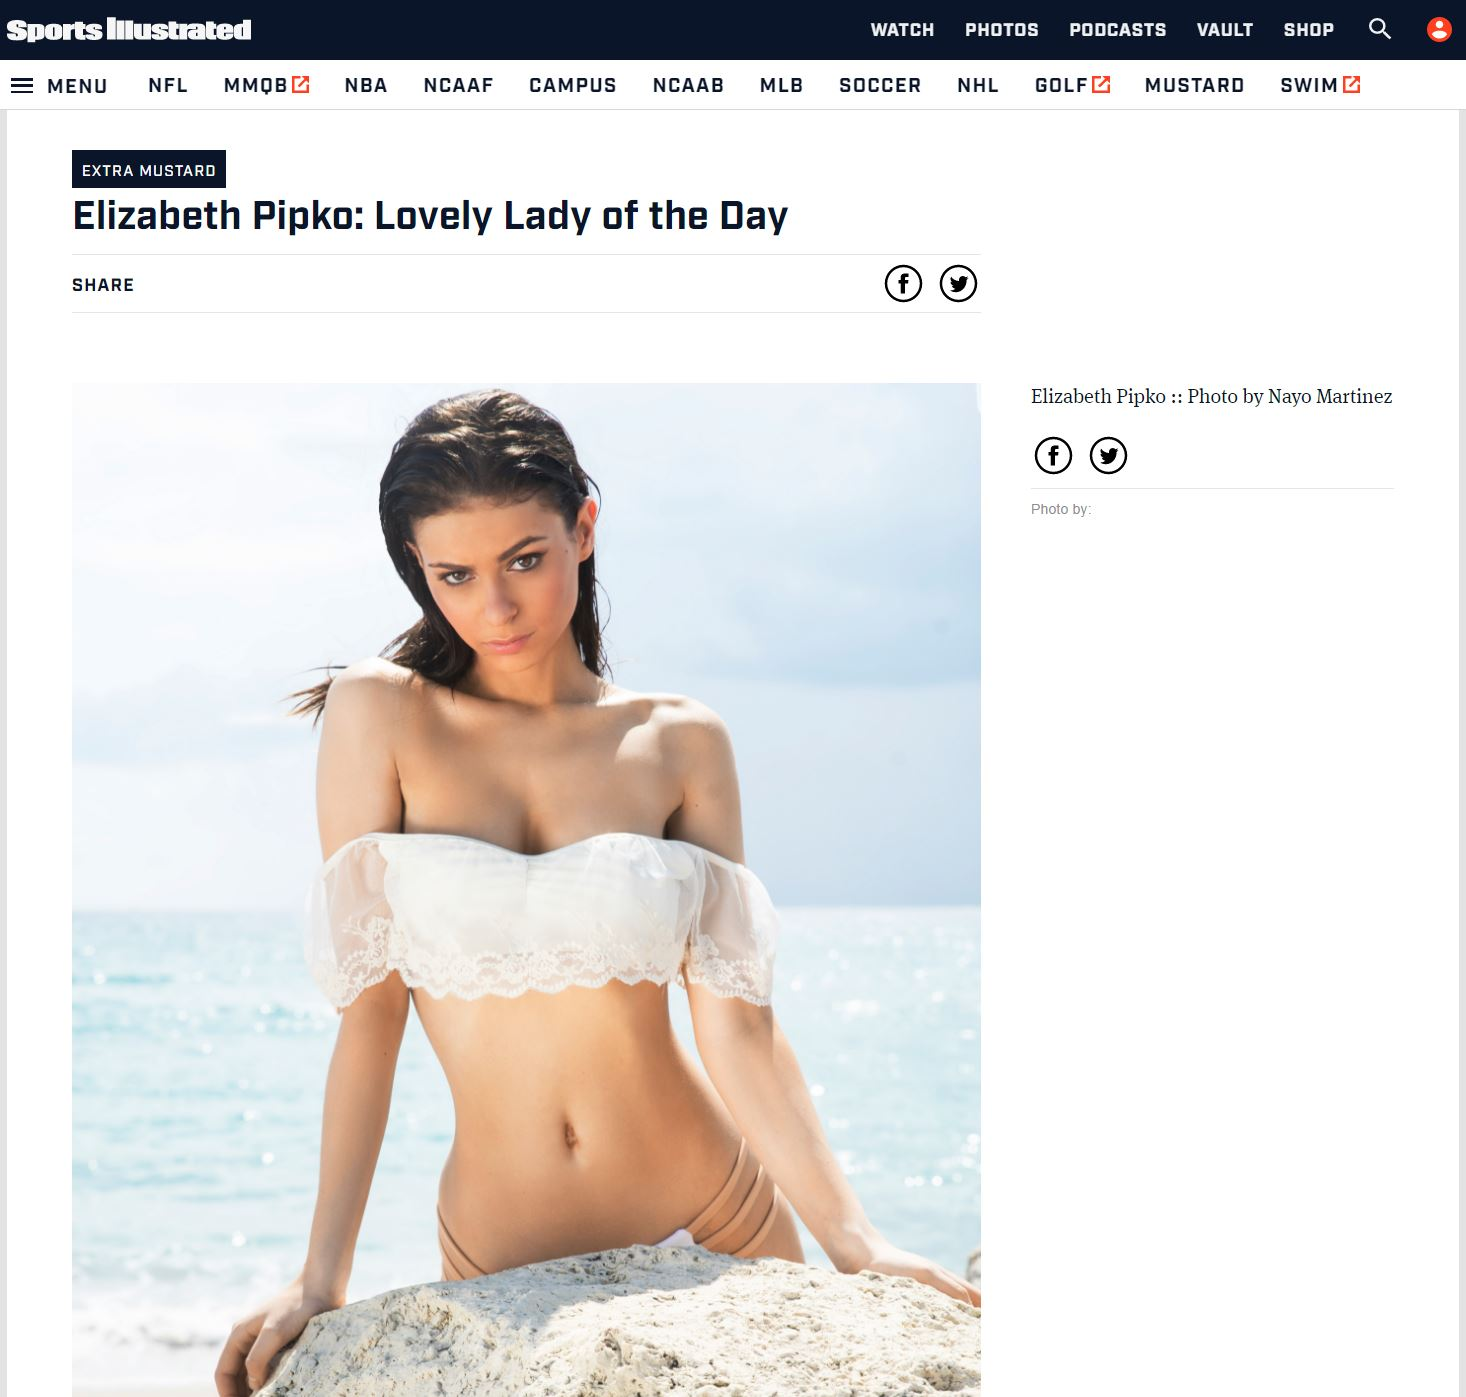 Elizabeth Sports Illustrated.JPG